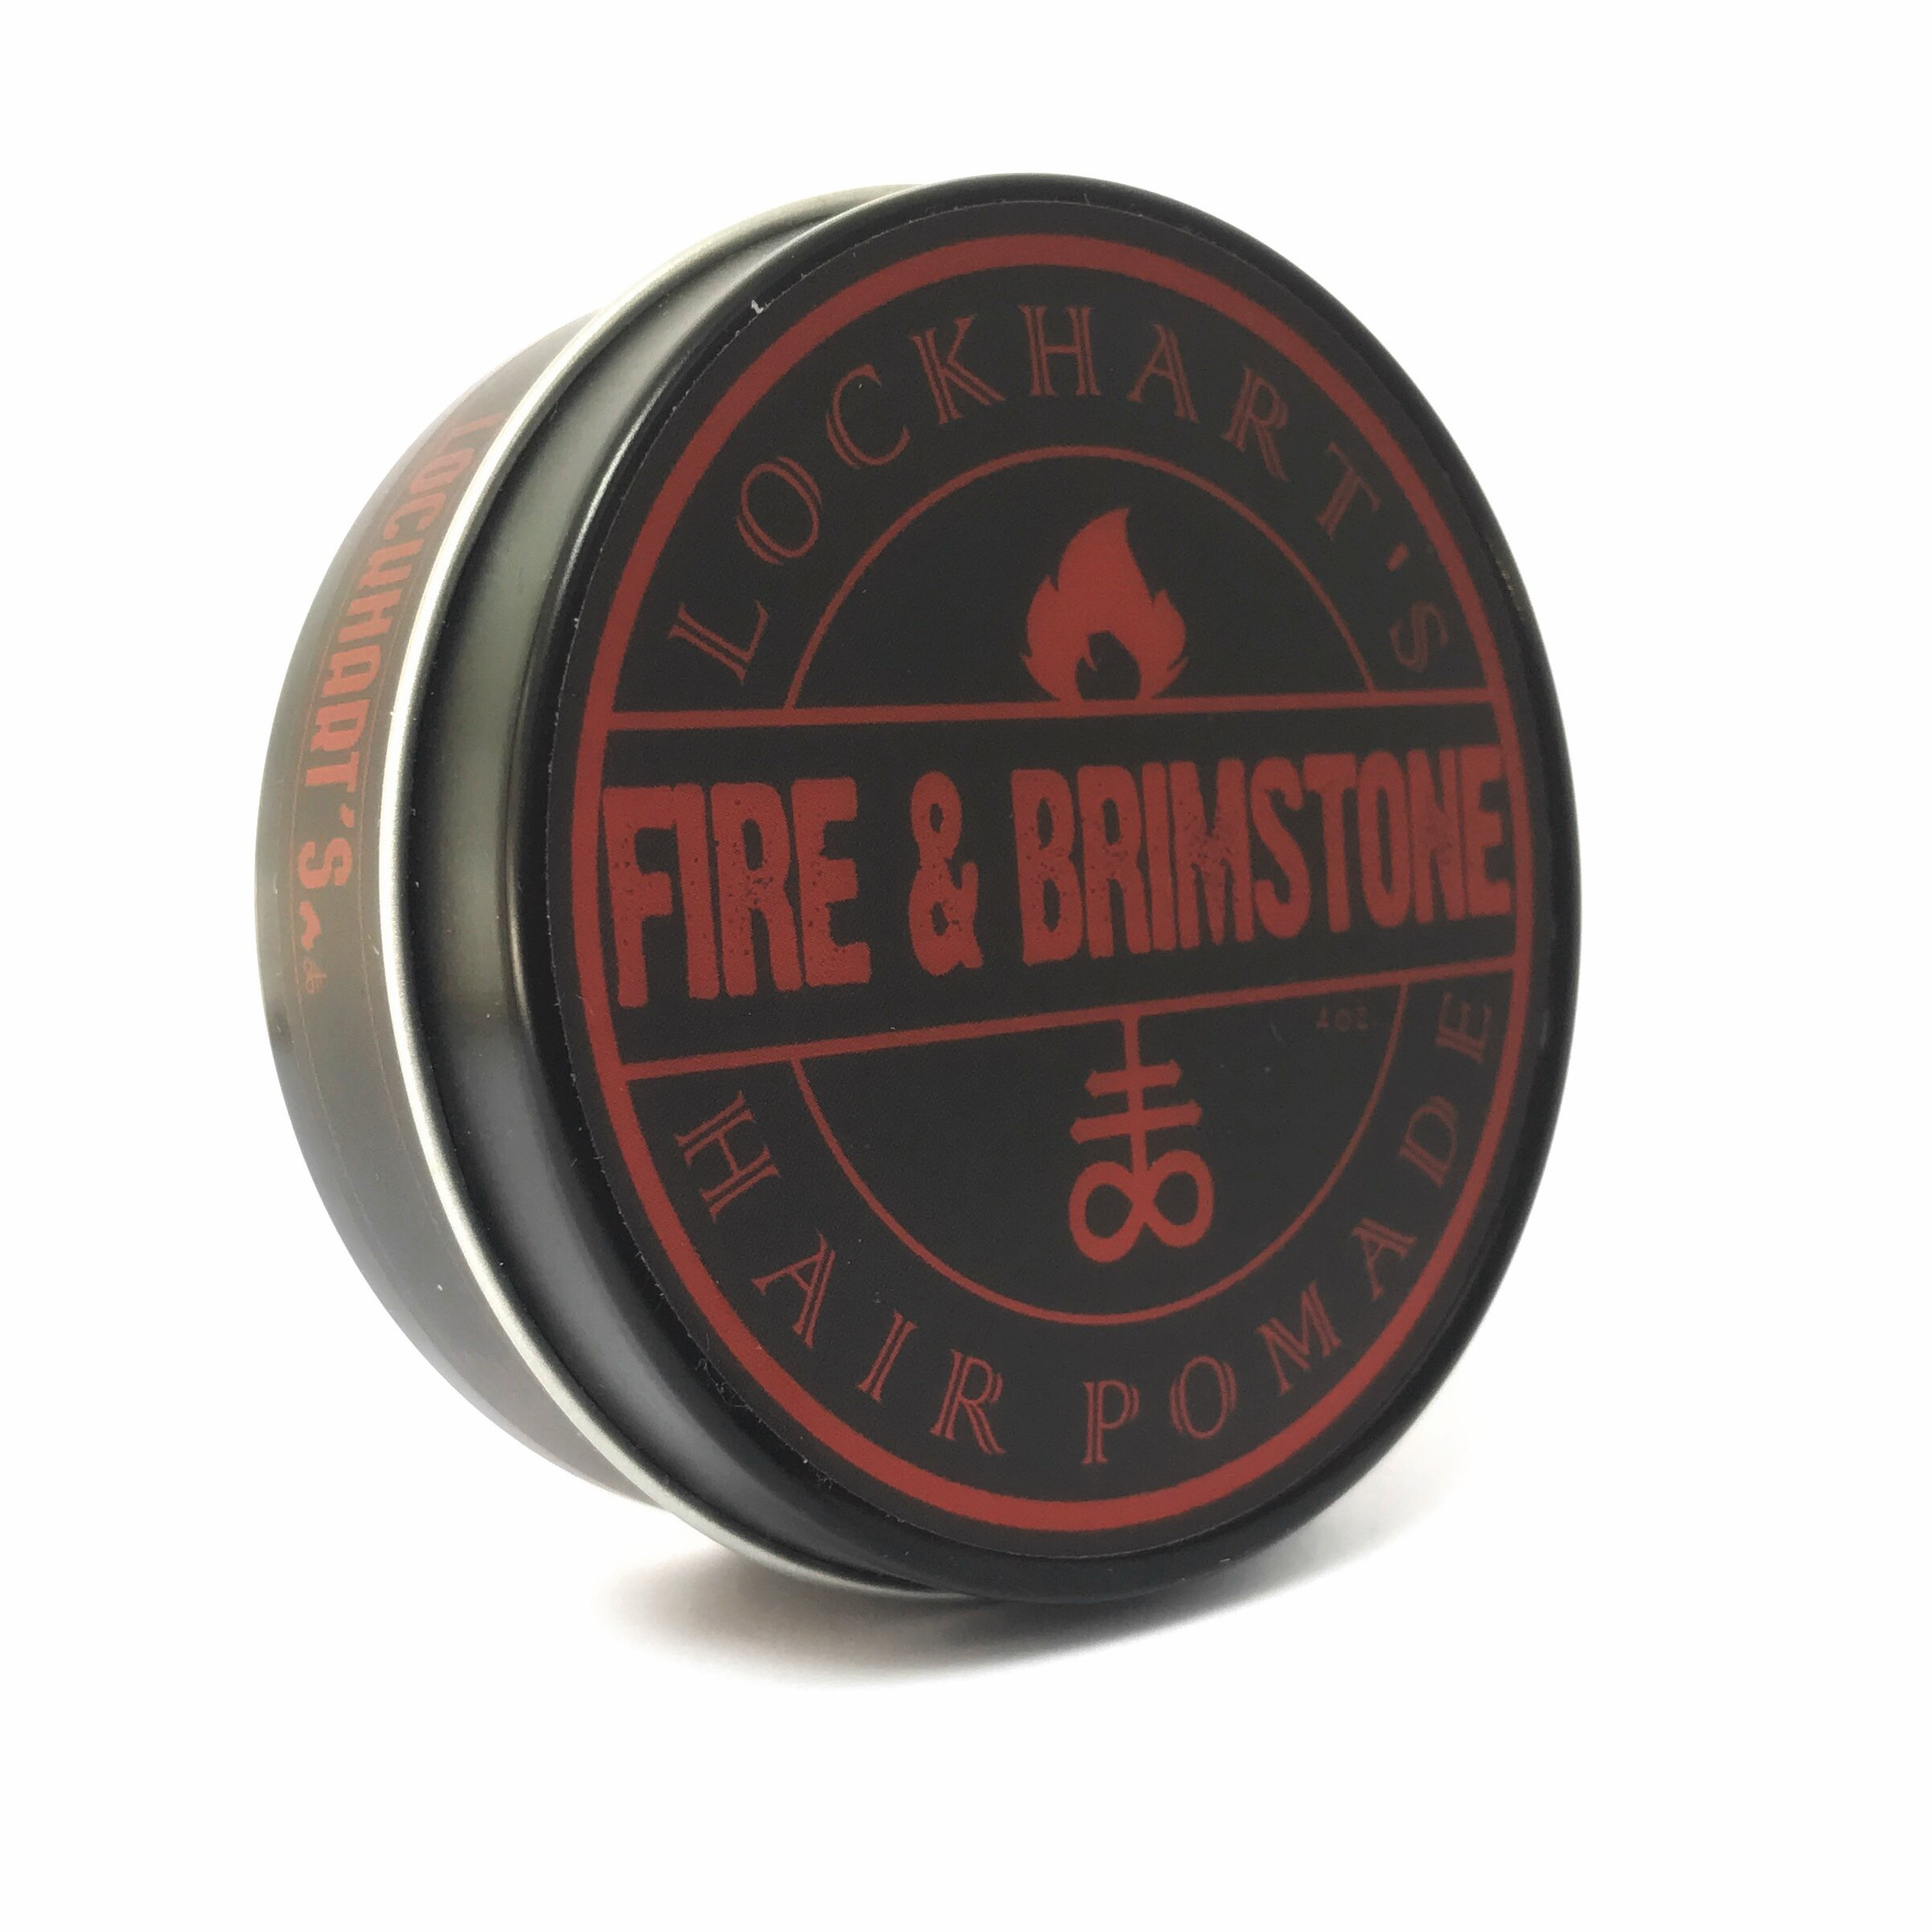 Lockhart's Authentic. Fire and Brimstone